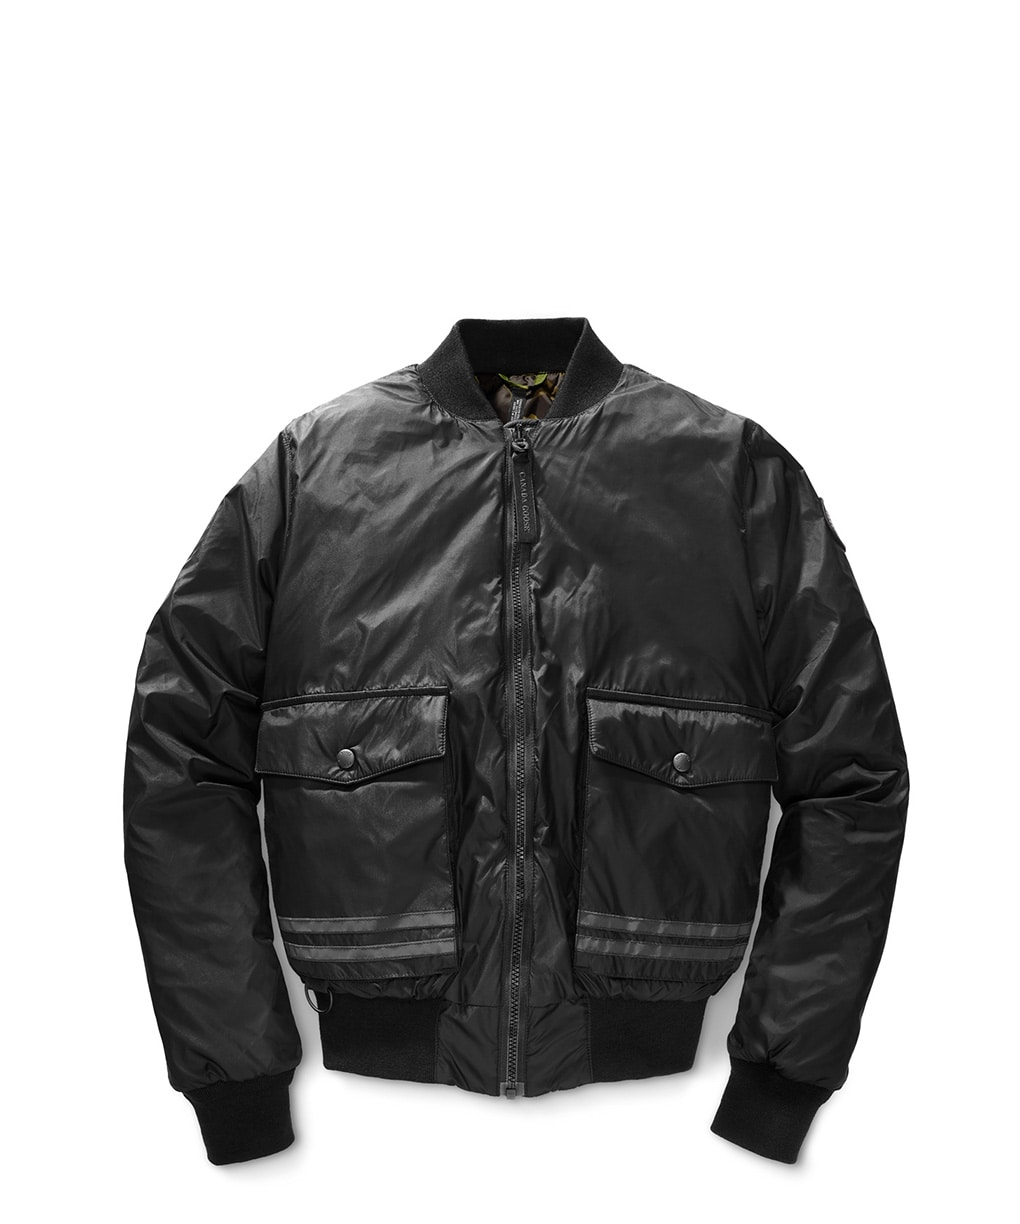 NORTH SHORE BOMBER BLACK LABEL